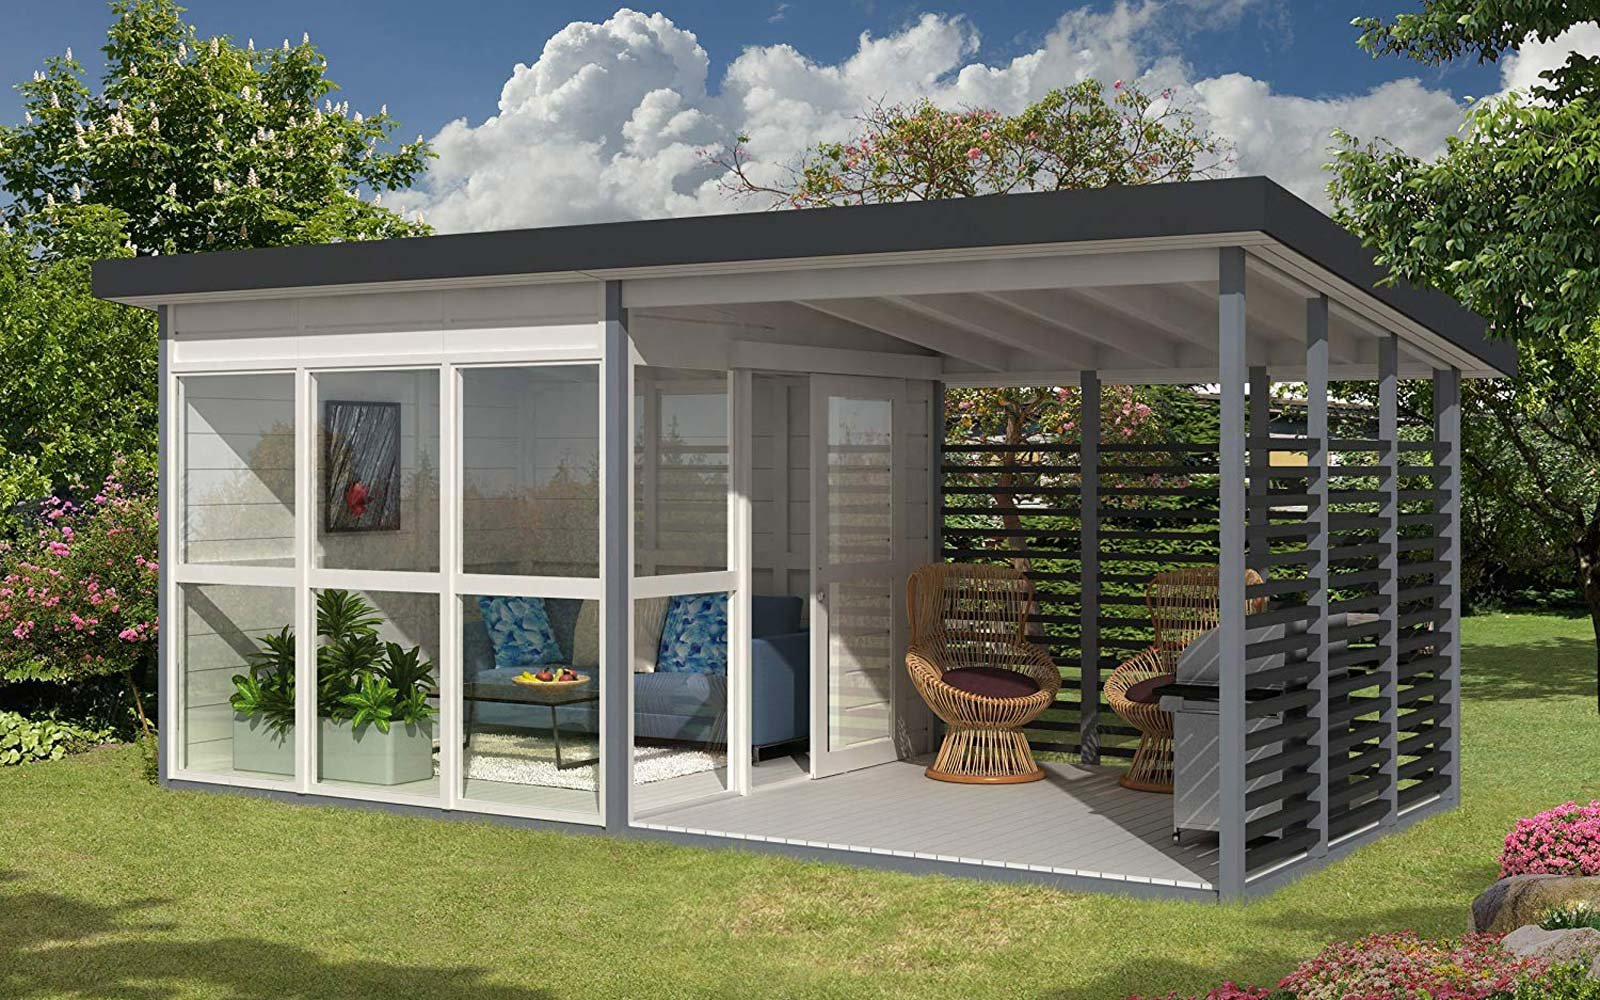 Amazon Is Selling a DIY Backyard Guest House That You Can Build in 8 Hours